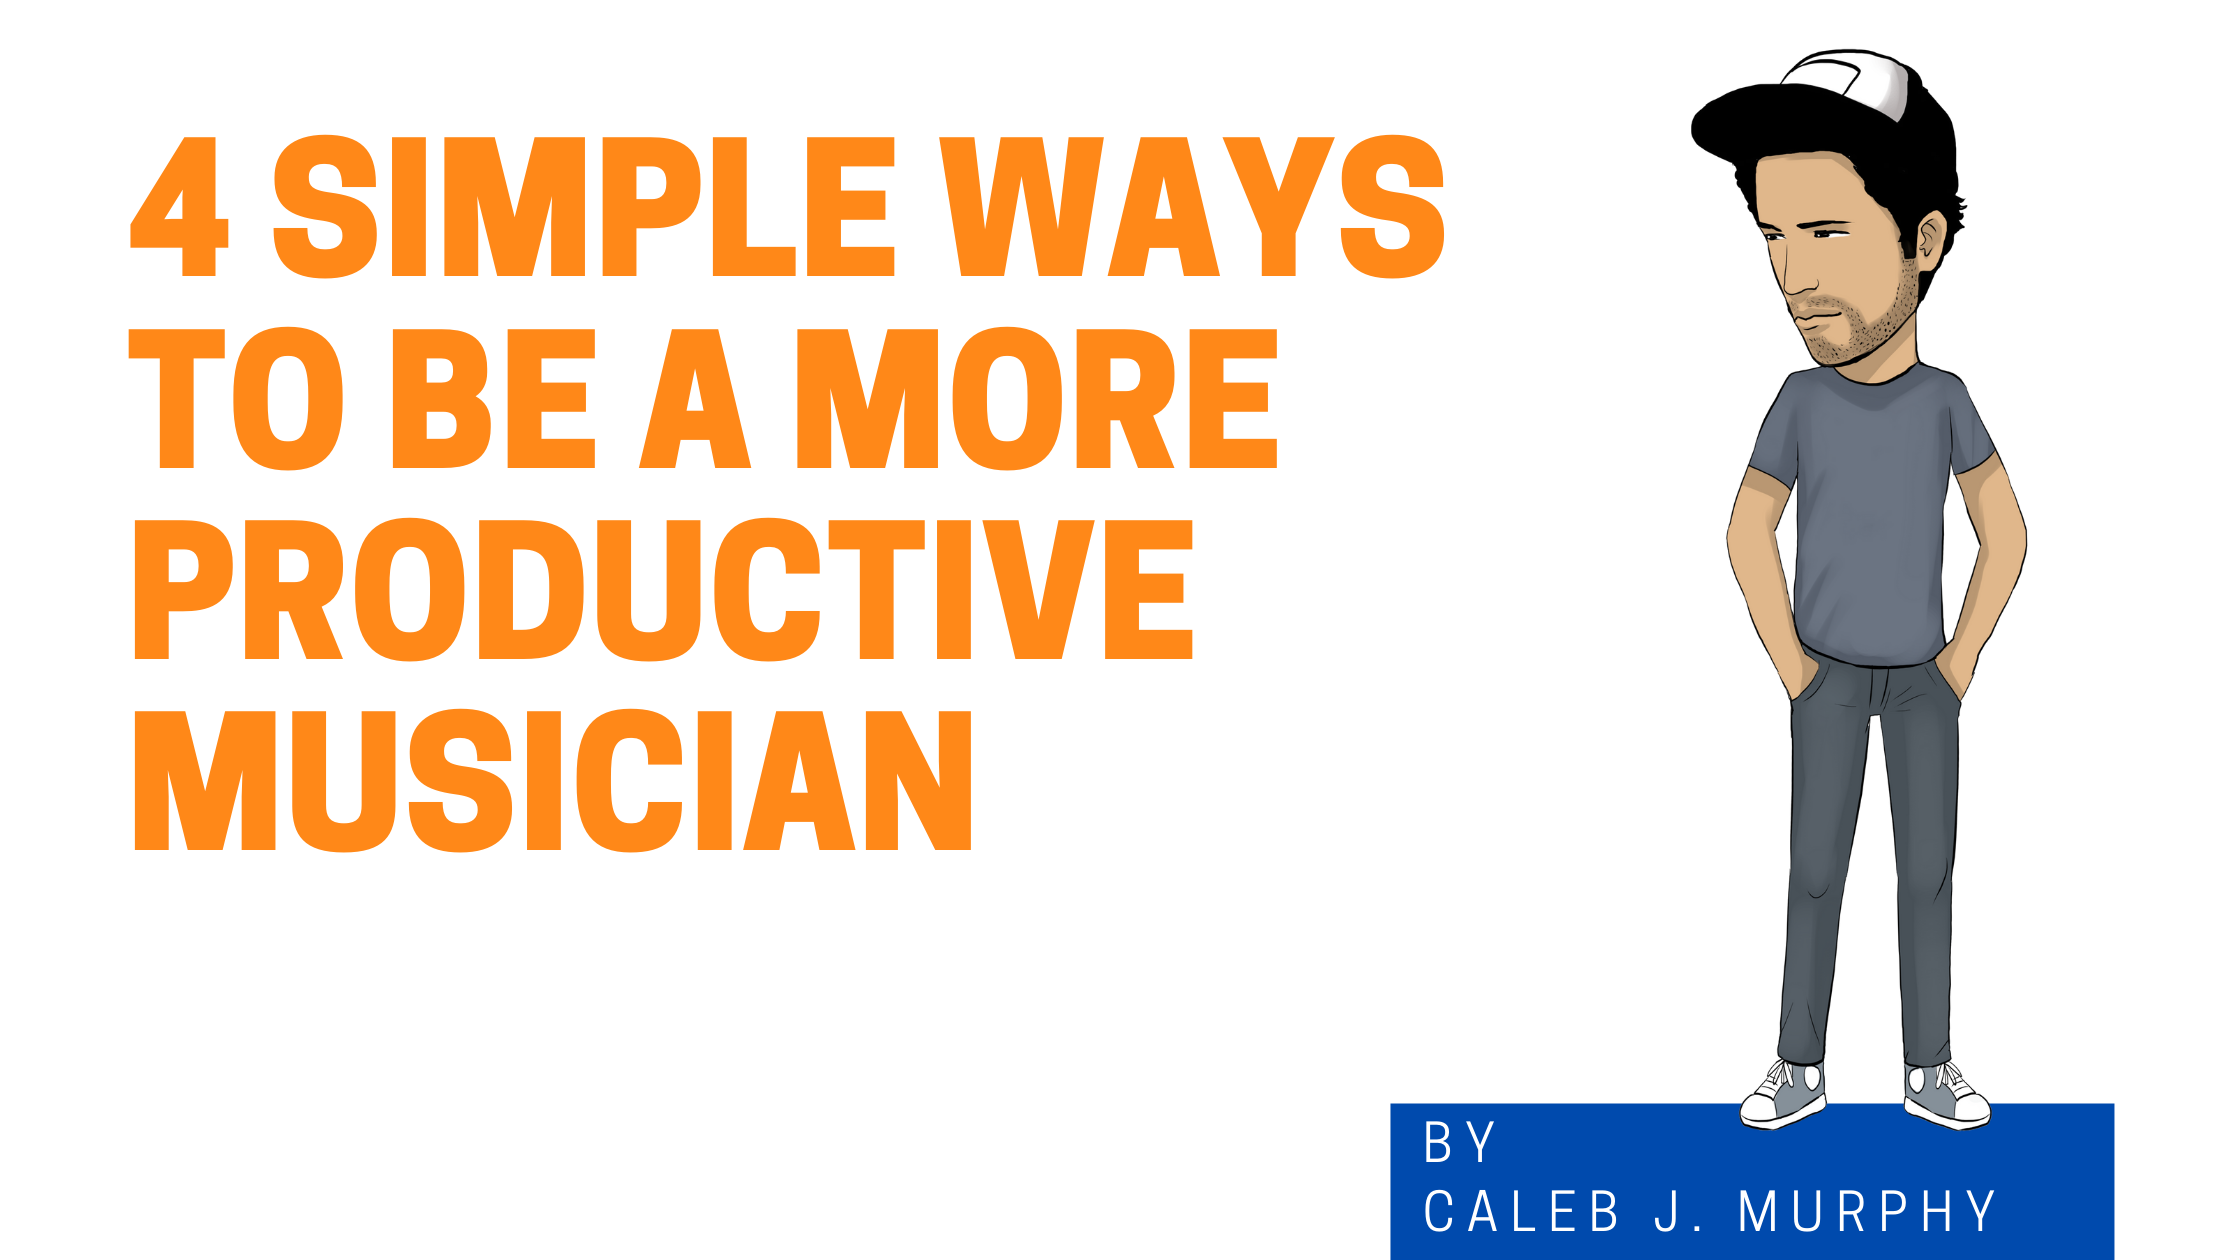 4 Simple Ways To Be a More Productive Musician blog image with cartoon version of Caleb